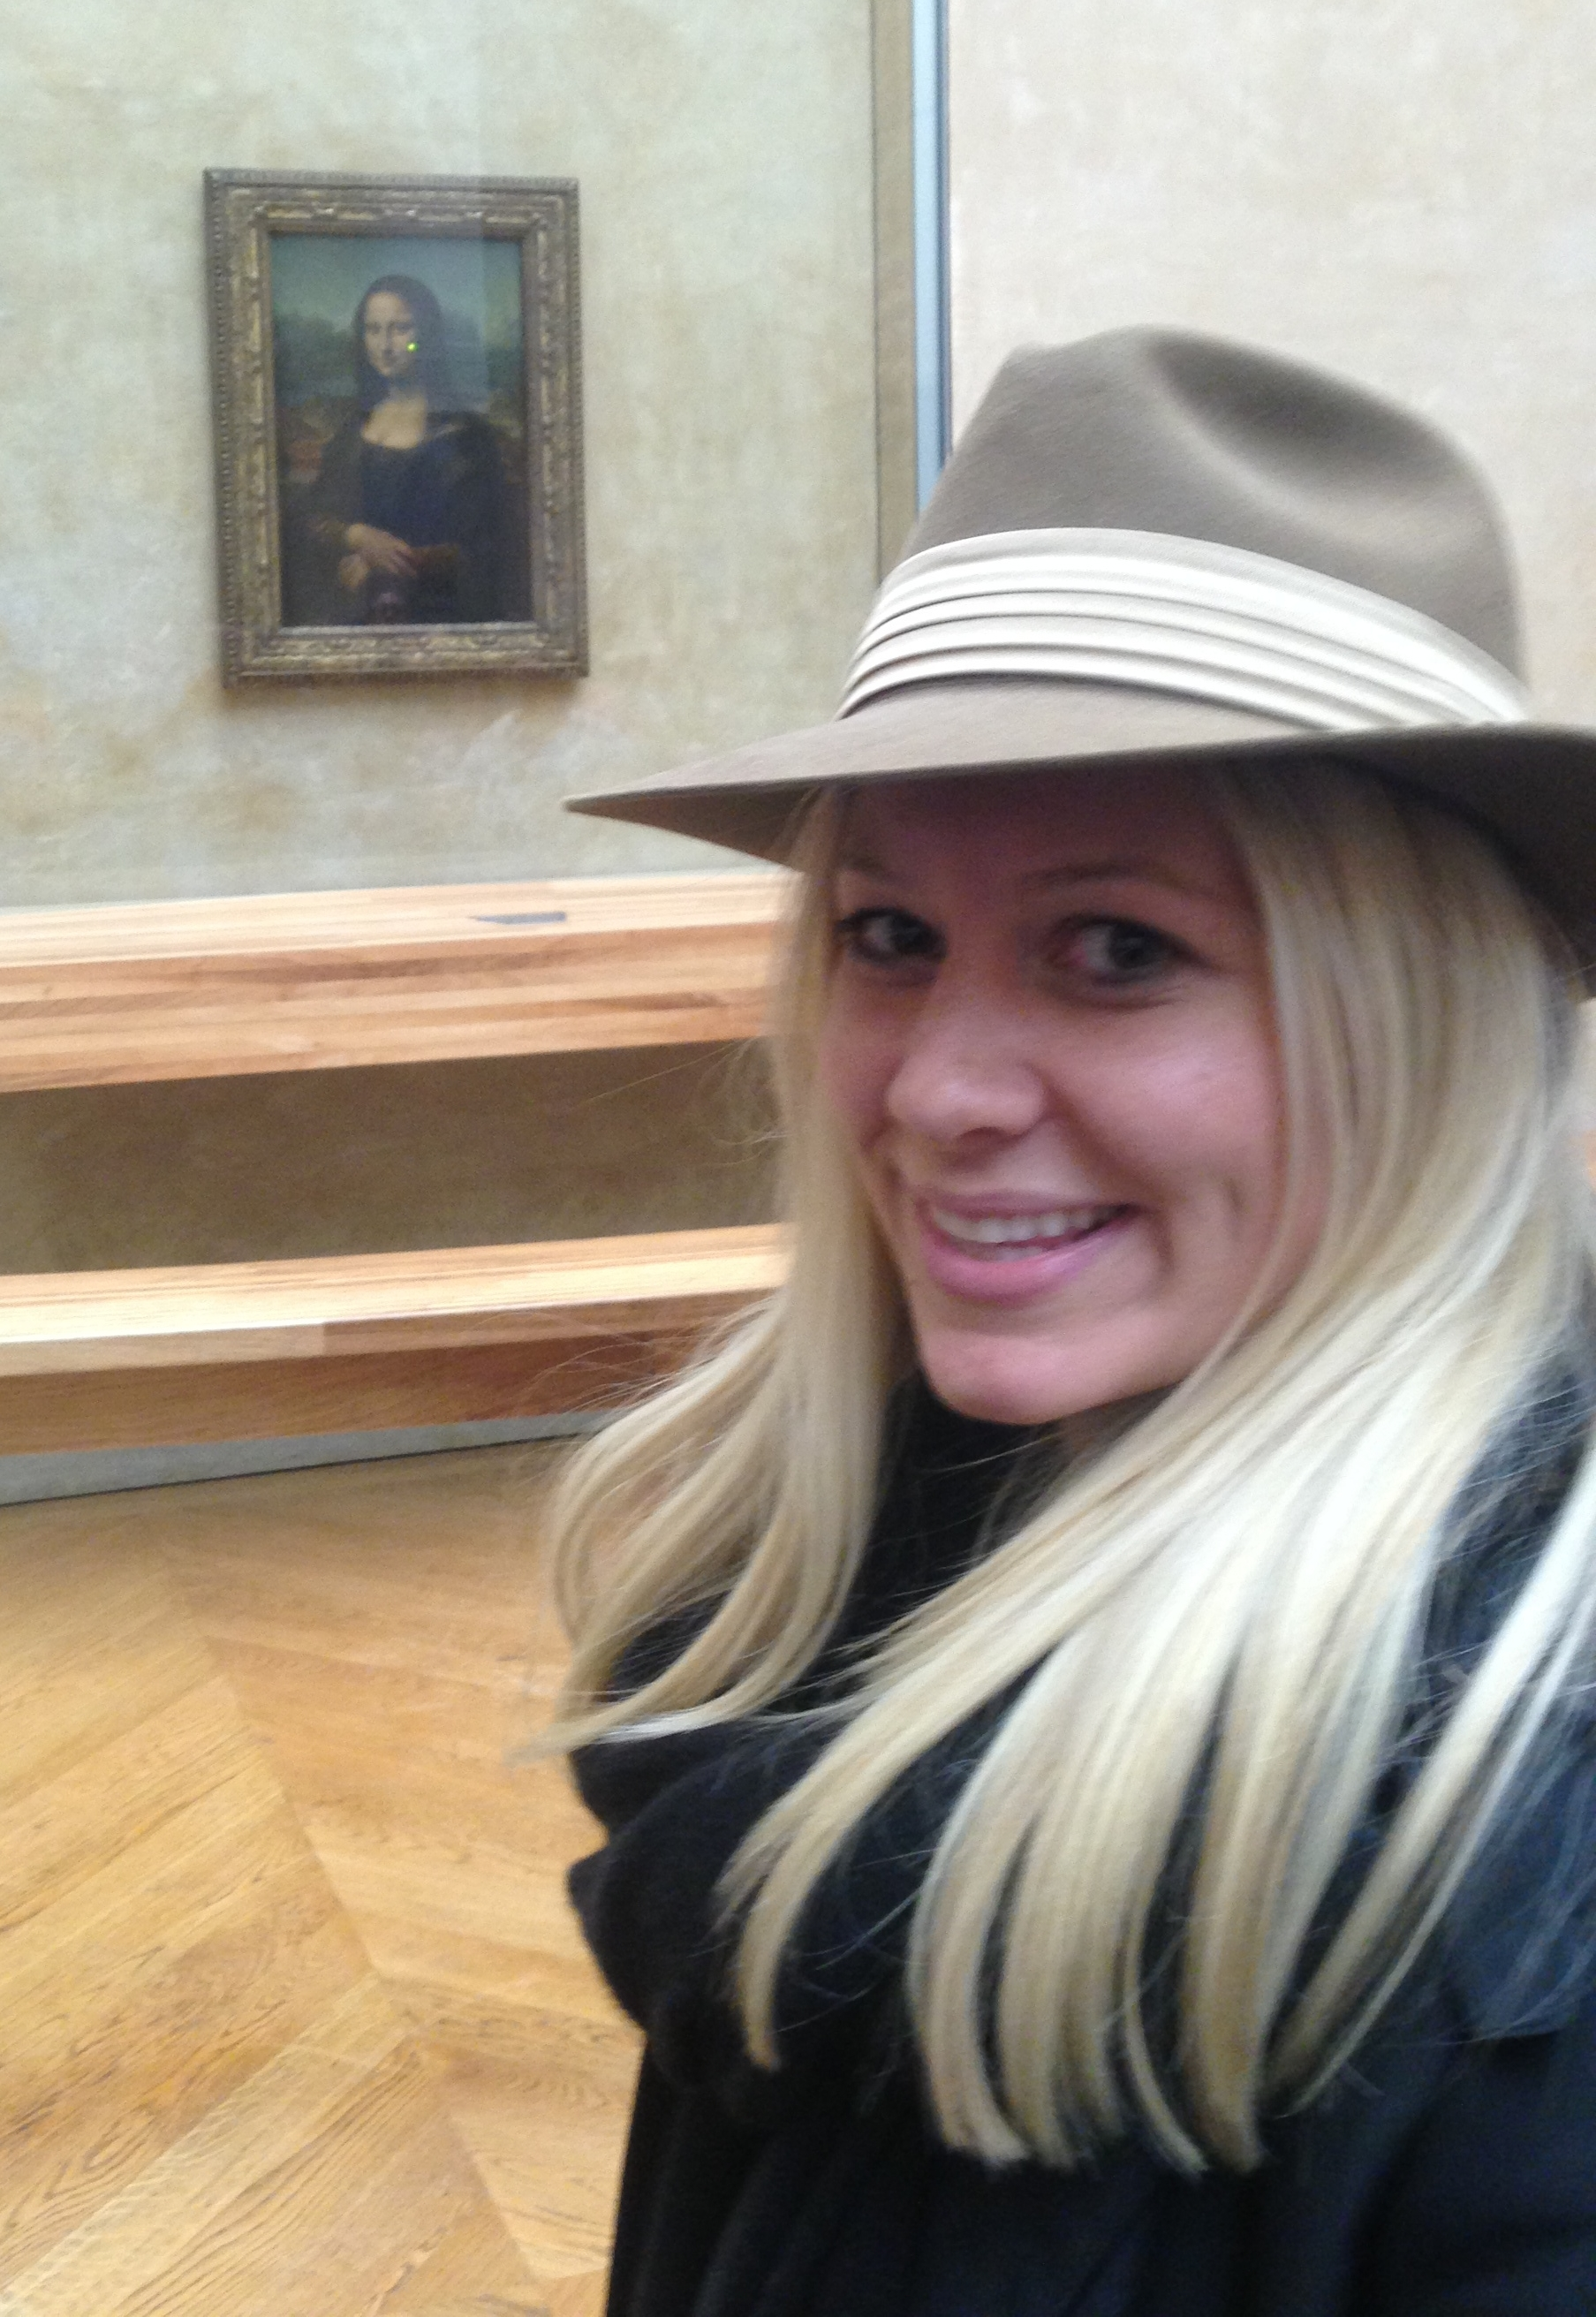 mona lisa, whatever at the louvre.